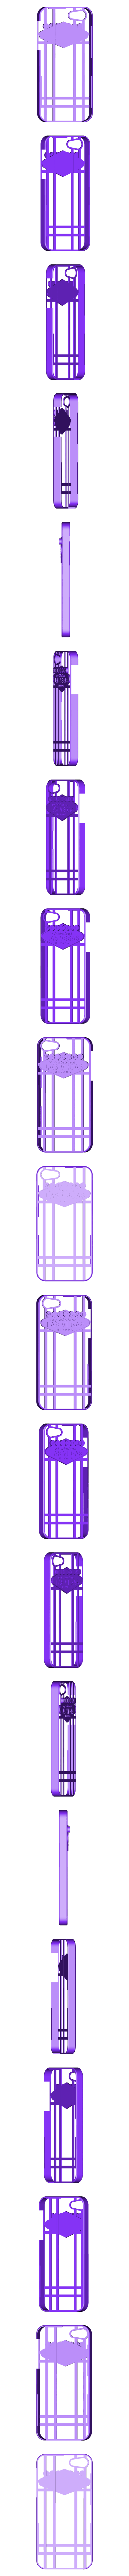 vegas_sign_iphone_5_case_repaired.stl Download free STL file iPhone 5 Vegas Case • 3D printing model, AliSouskian